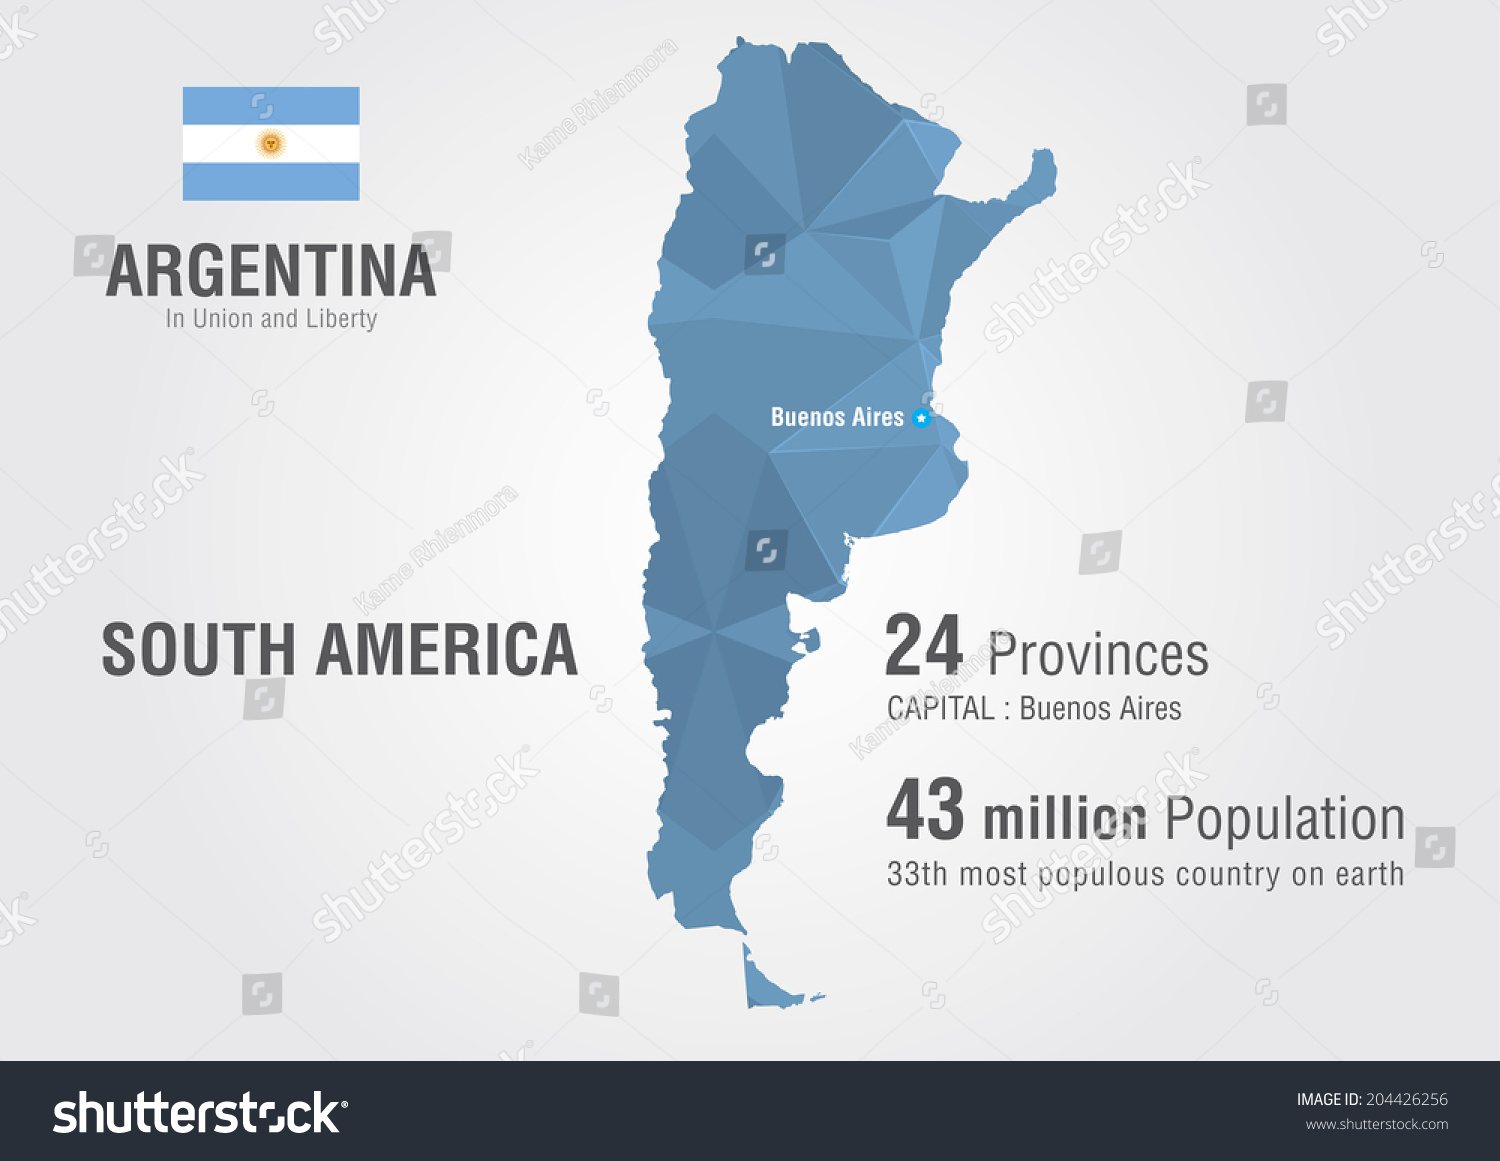 Argentina world map pattern pixel diamond stock vector 204426256 argentina world map pattern pixel diamond stock vector 204426256 shutterstock gumiabroncs Images